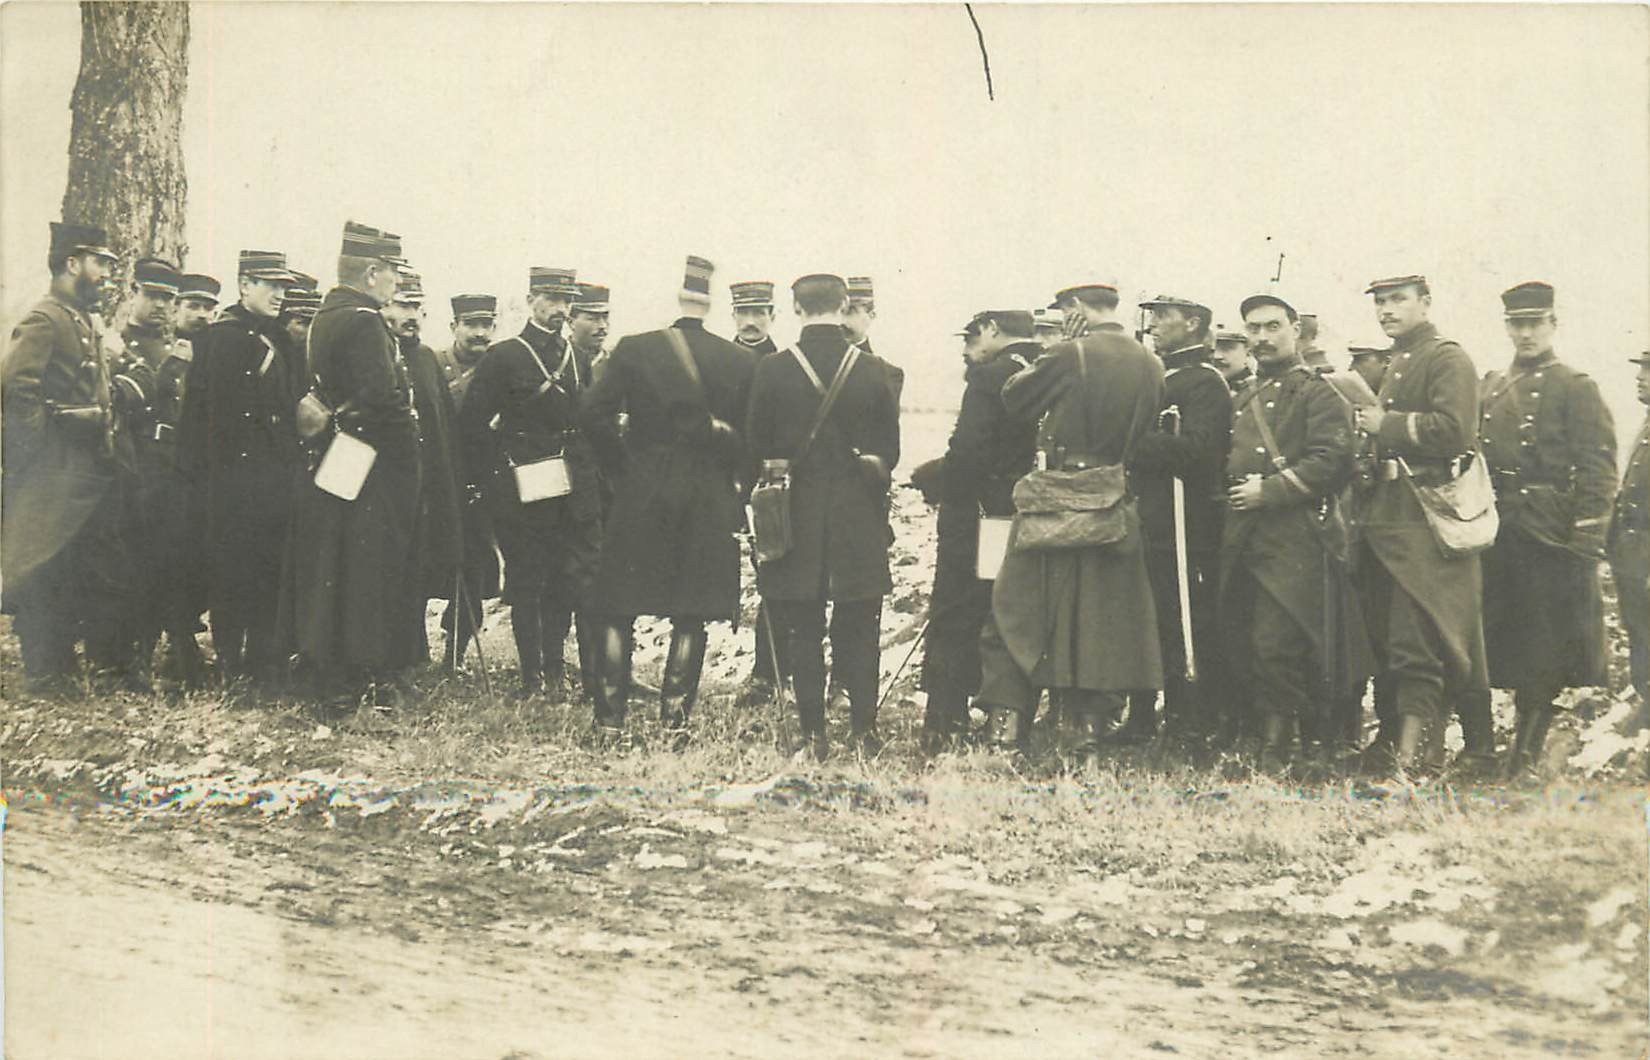 WW 55 VERDUN. Réunion Officiers et de Soldats militaires. Photo carte postale 1916